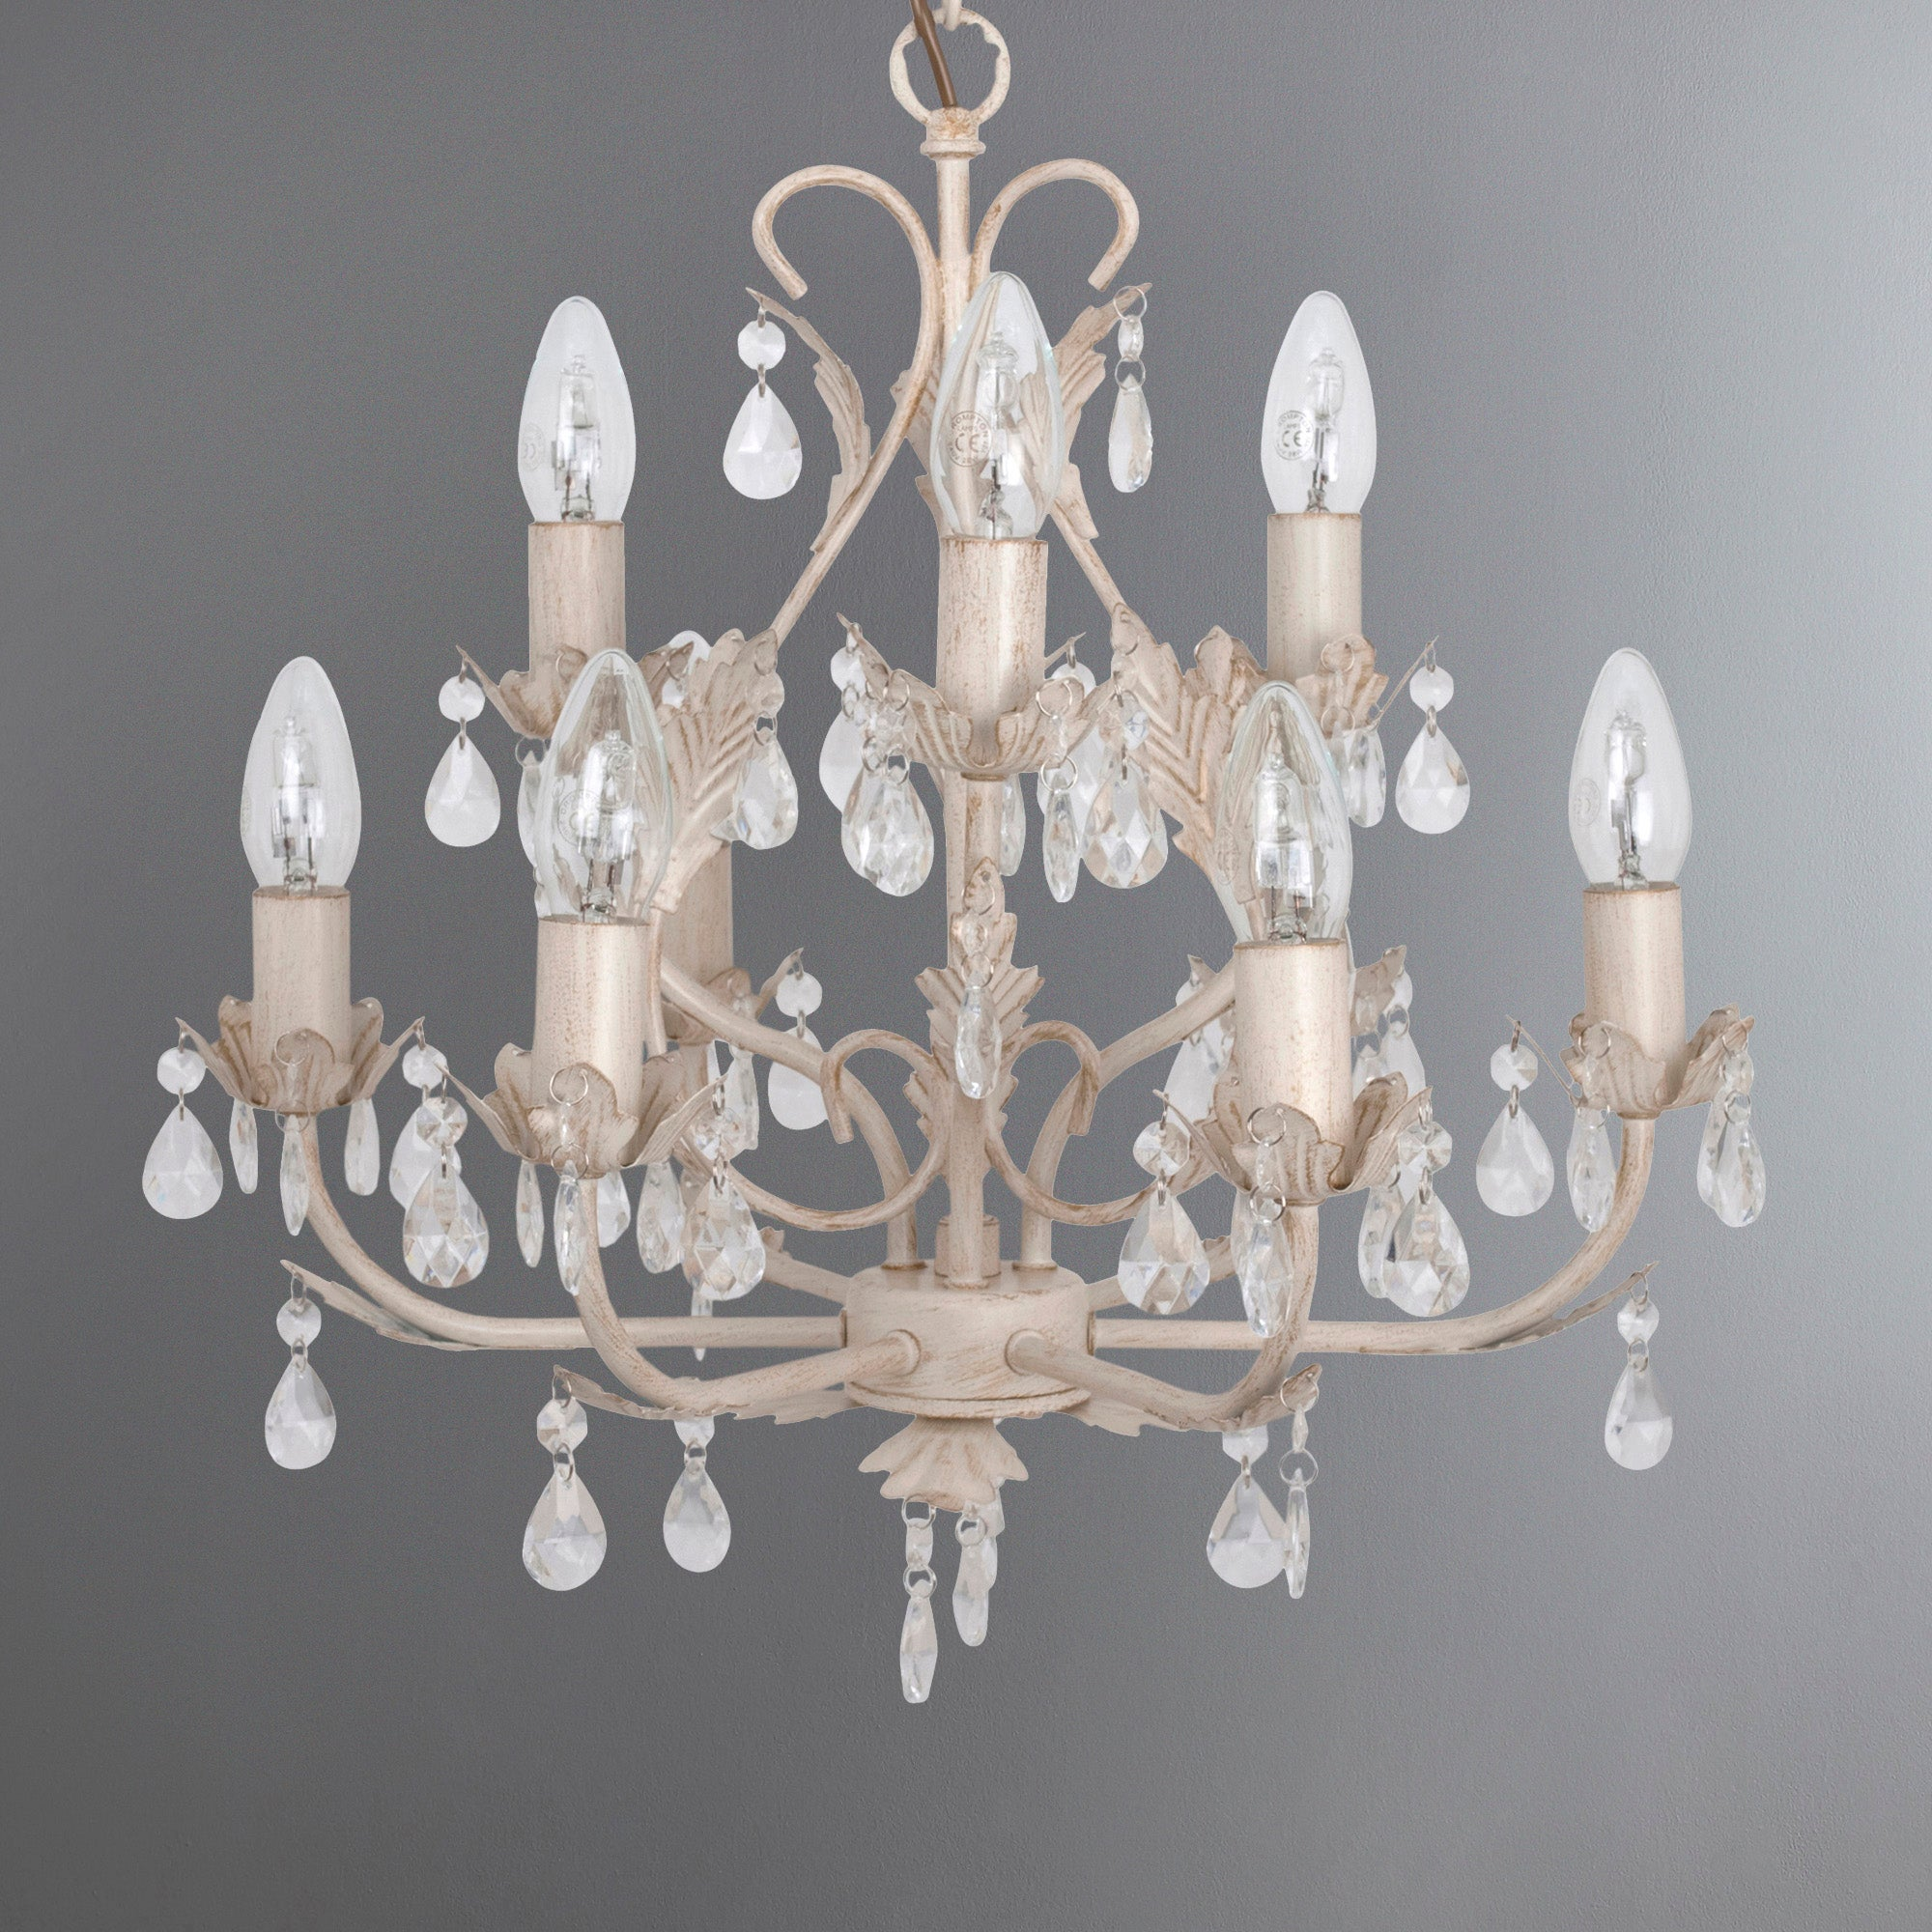 New styles at dunelm mill based discounts leaf and jewel 9 light ceiling fitting mozeypictures Gallery